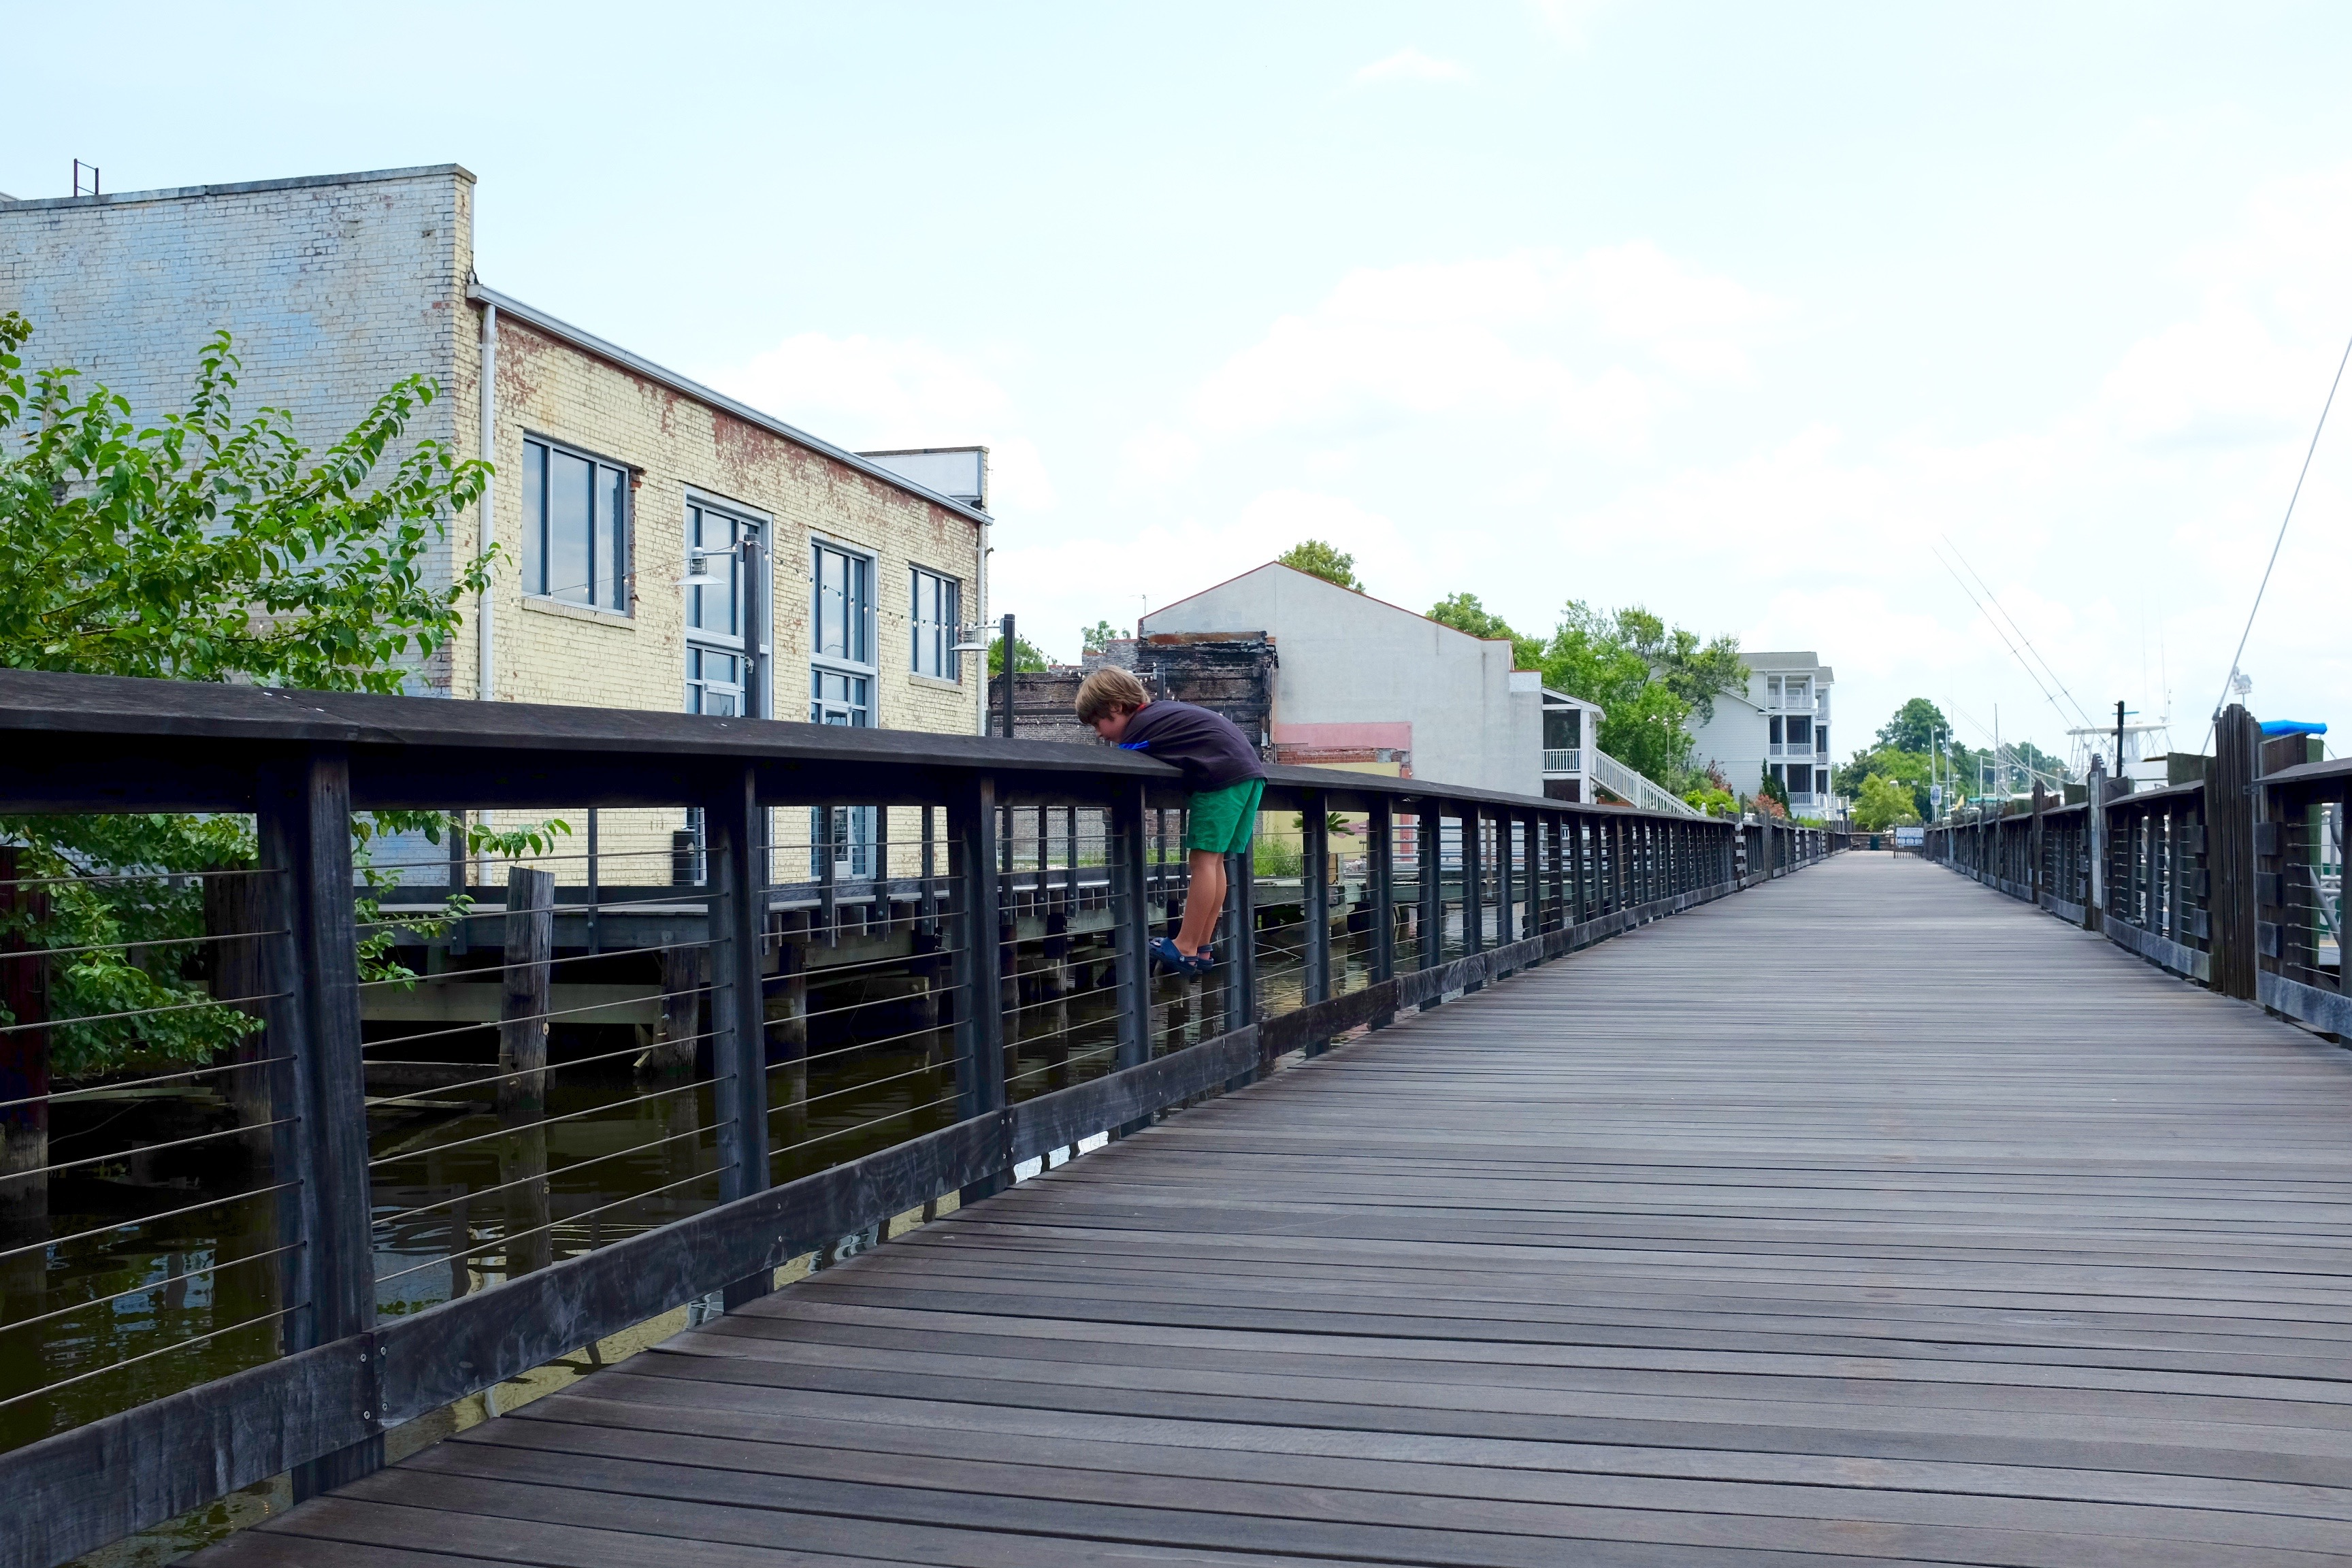 In Photos: A Day Trip to Georgetown, S.C.